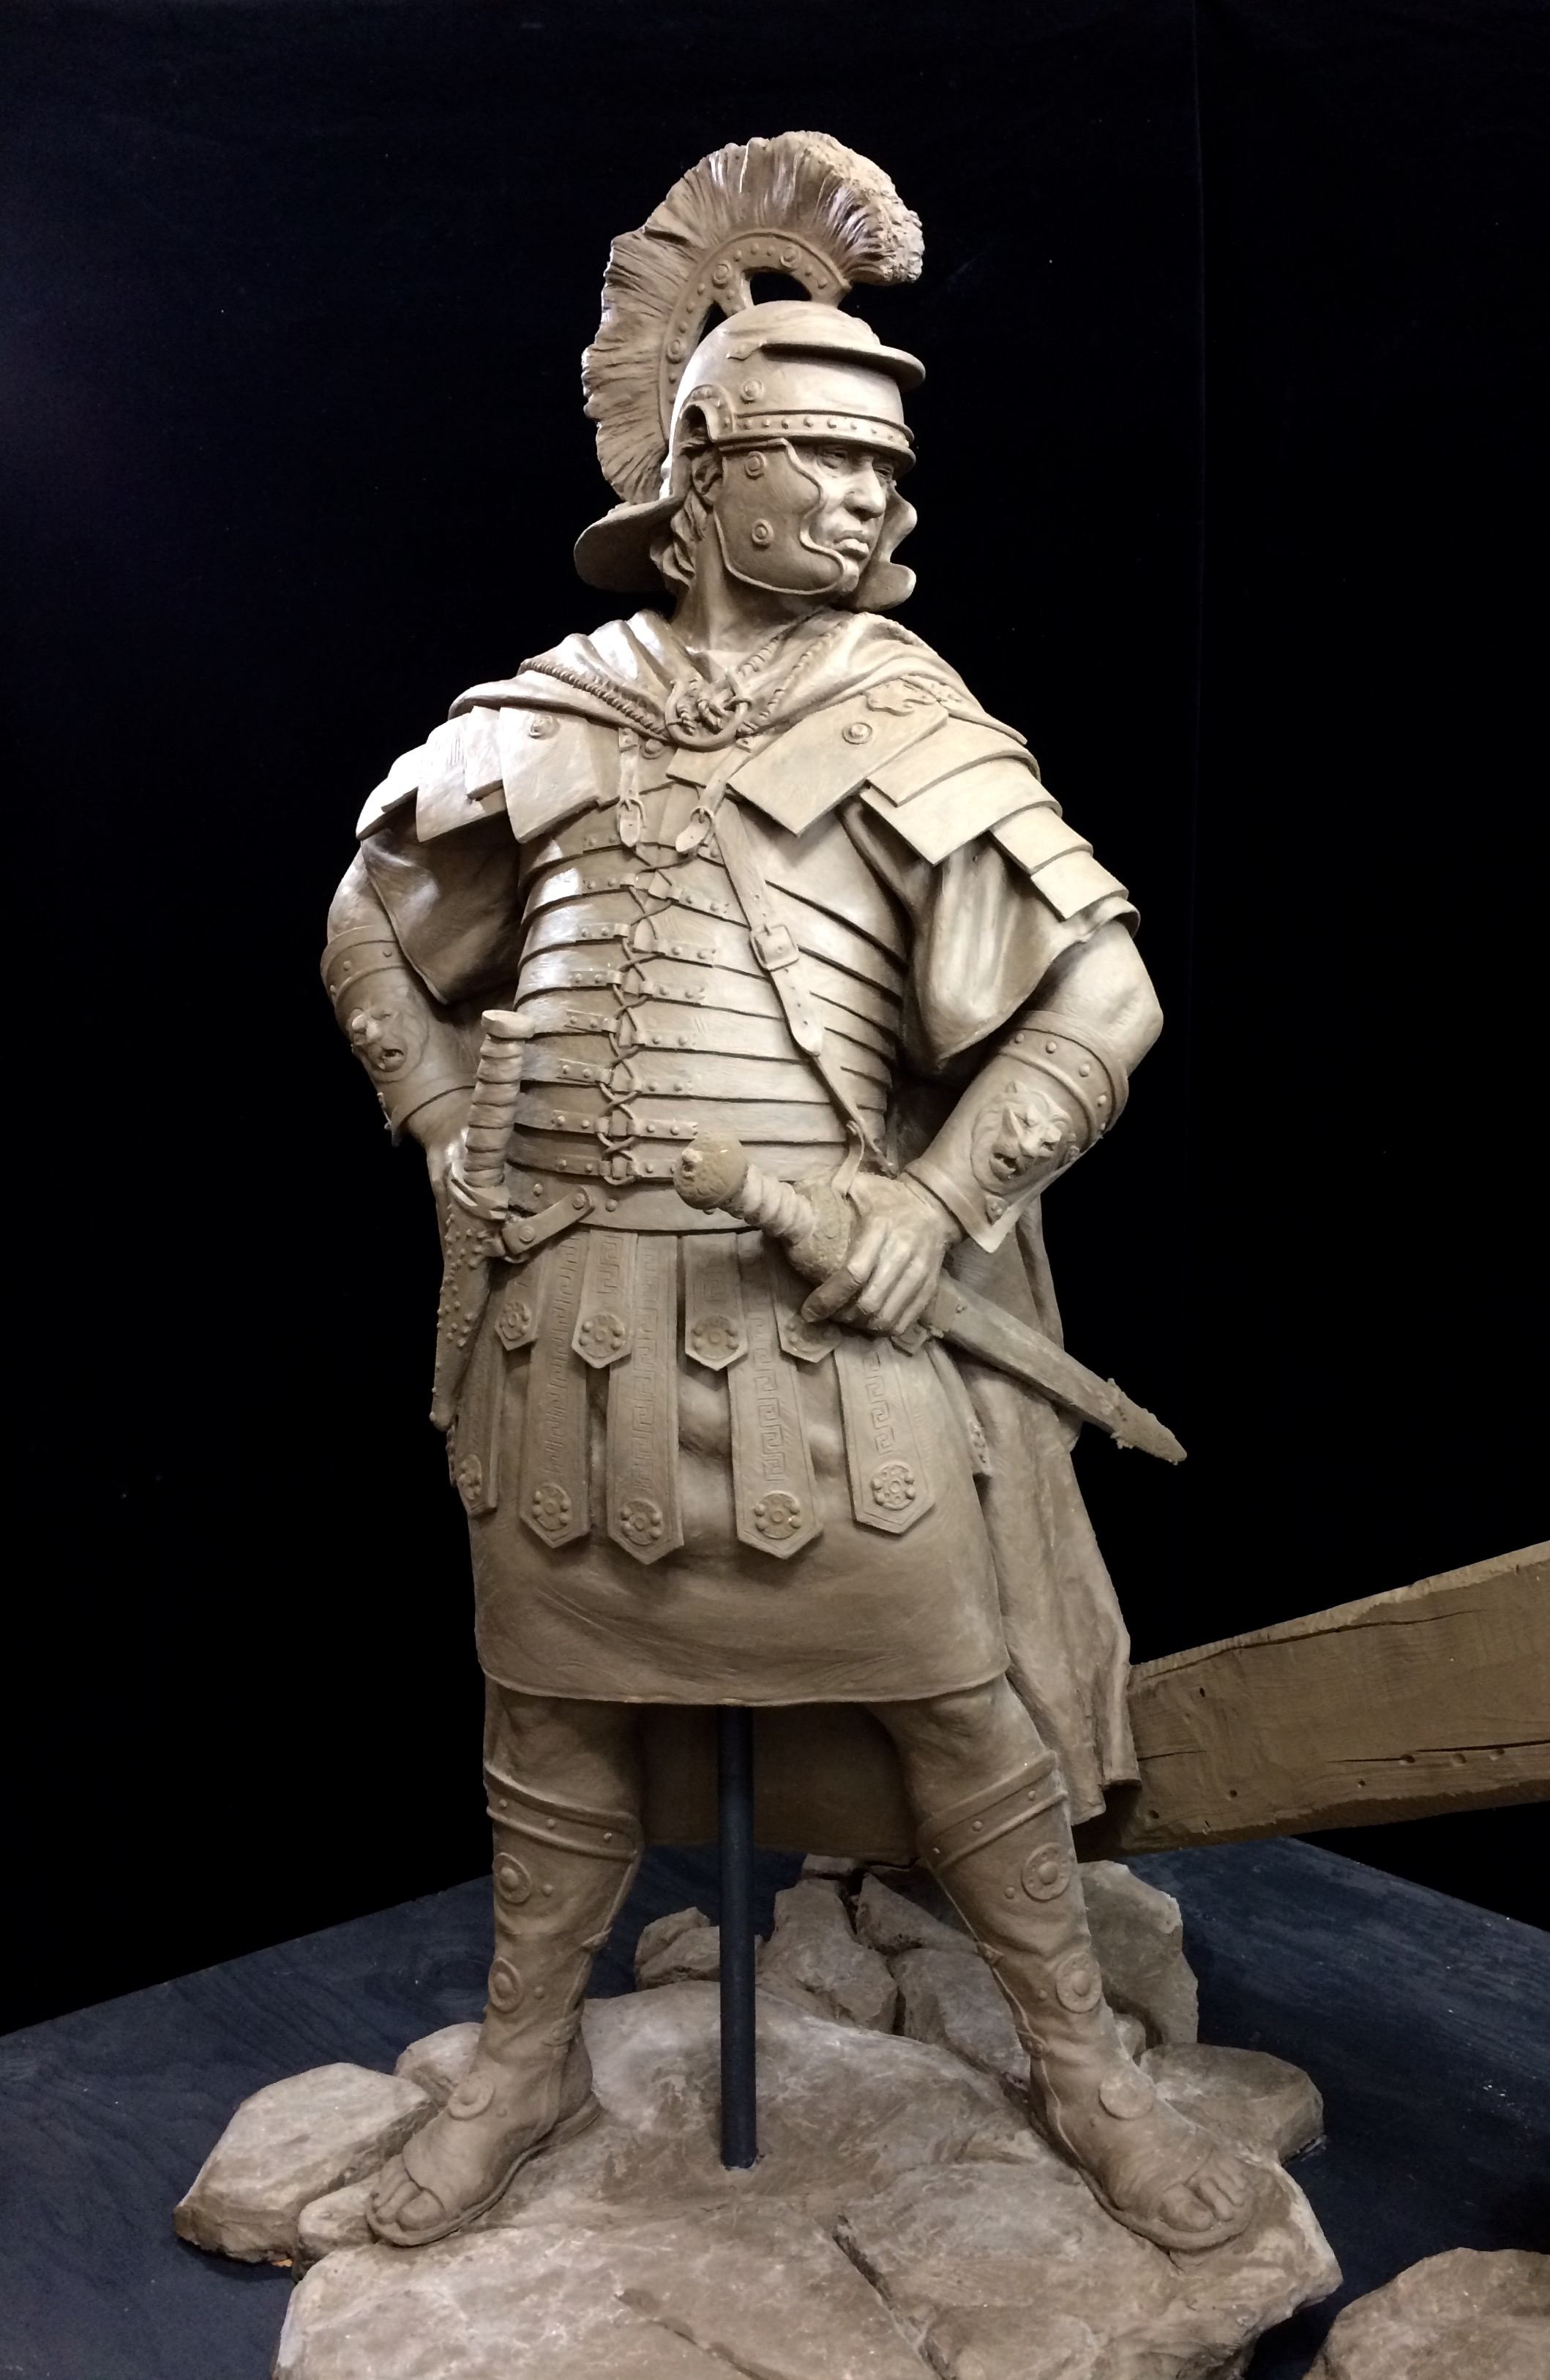 Half-size clay sculpture